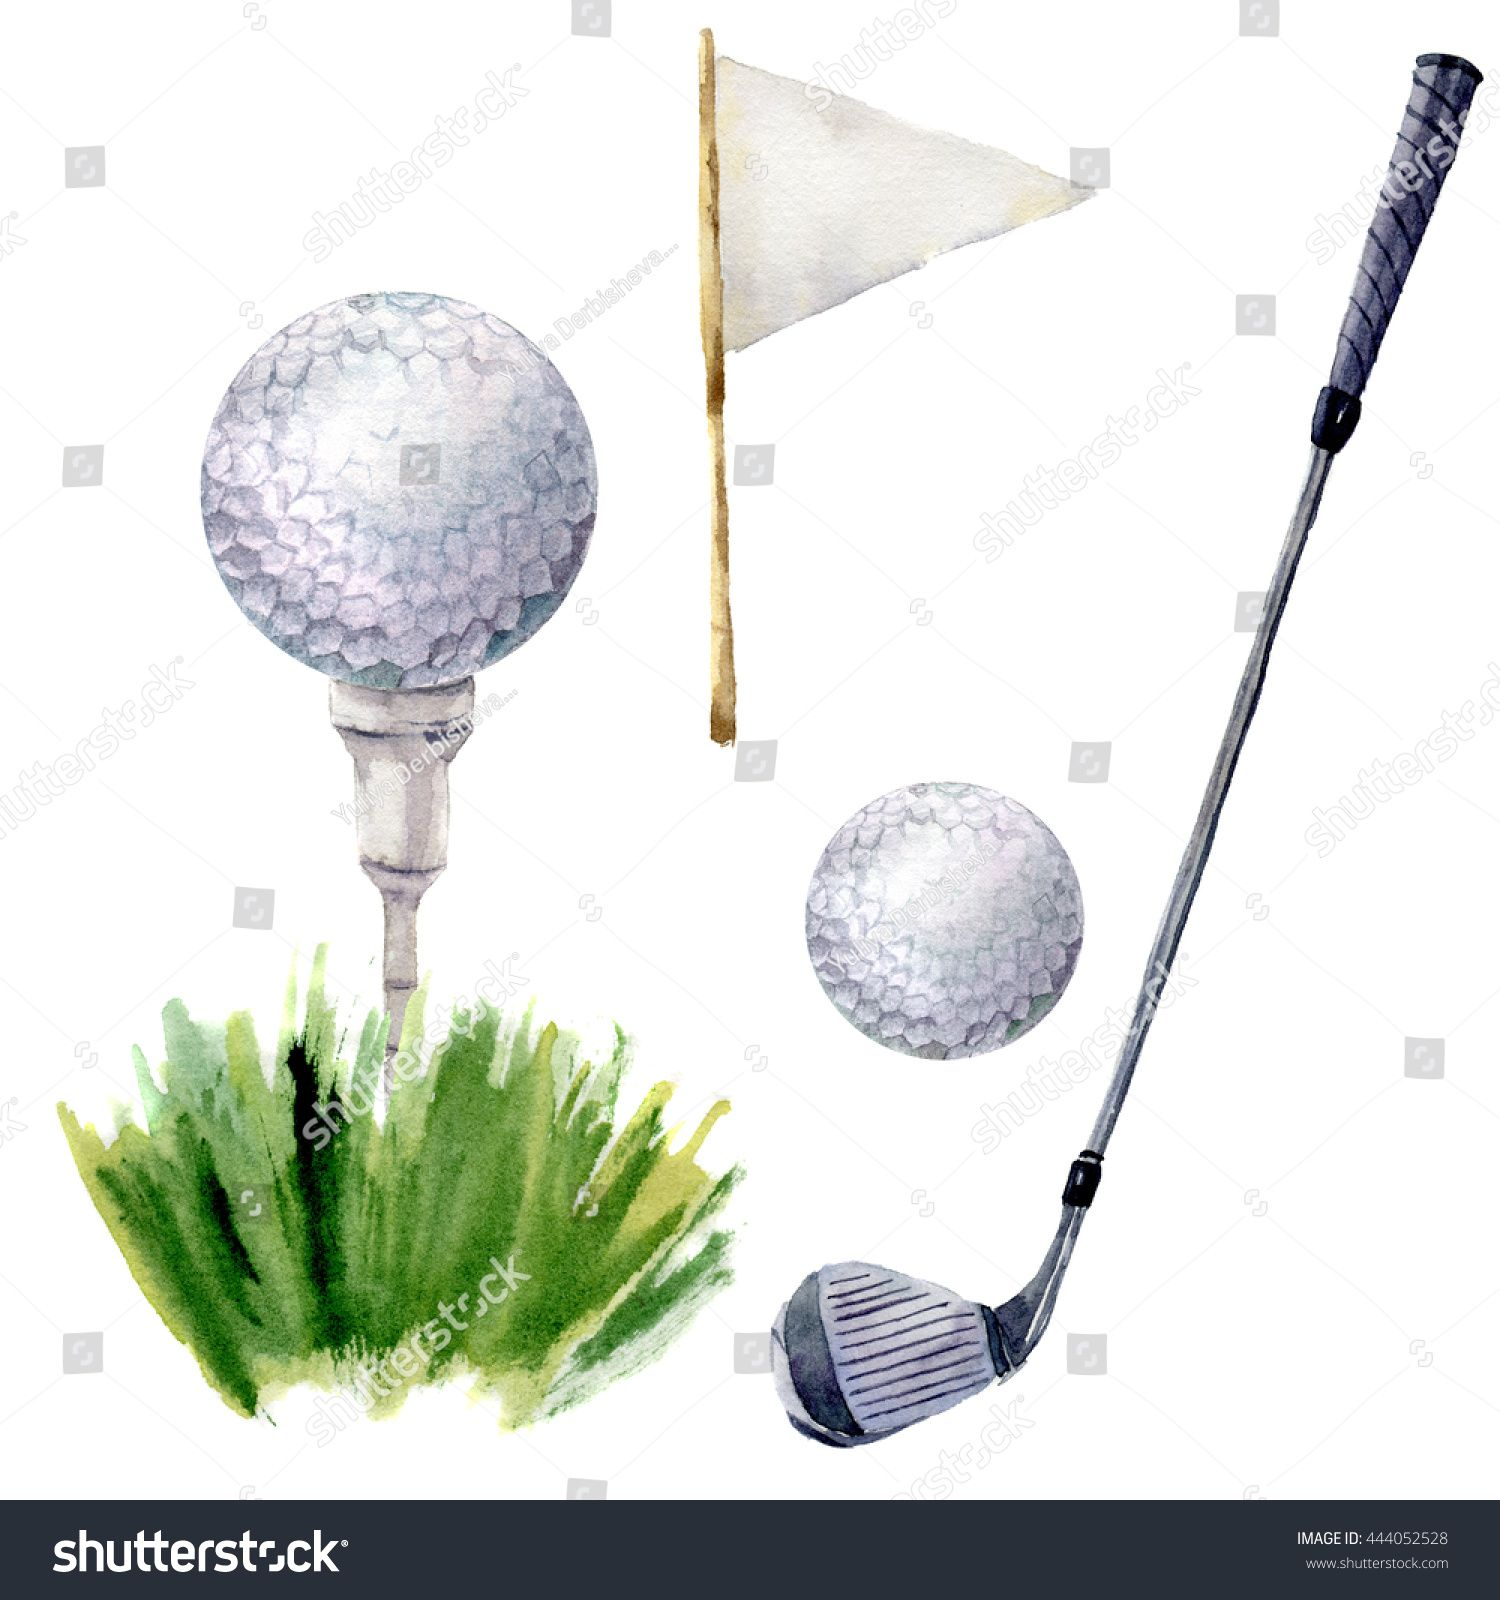 Watercolor Golf Elements Set Golf Illustration With Tee Golf Club Golf Ball Flagstick And Grass Isolated On White Presentation Design Illustration Elements